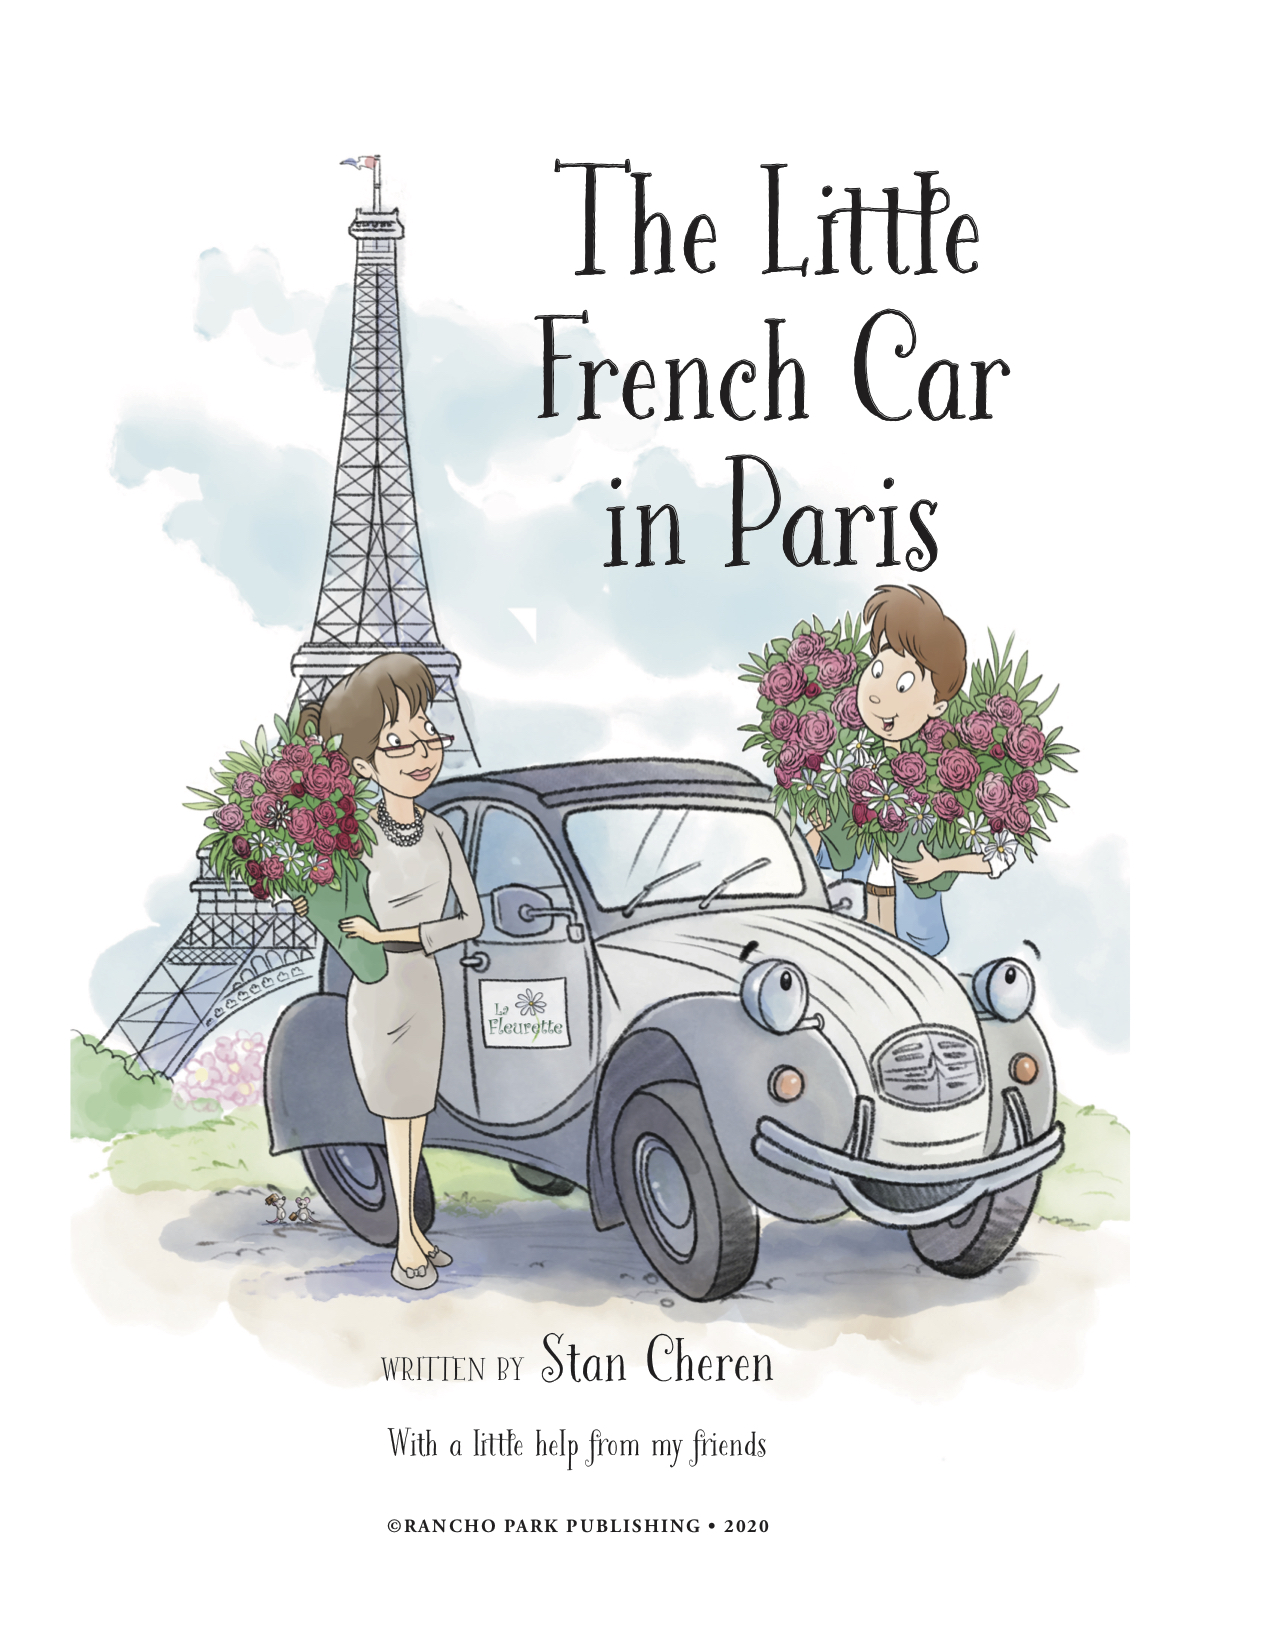 THE LITTLE FRENCH CAR IN PARIS